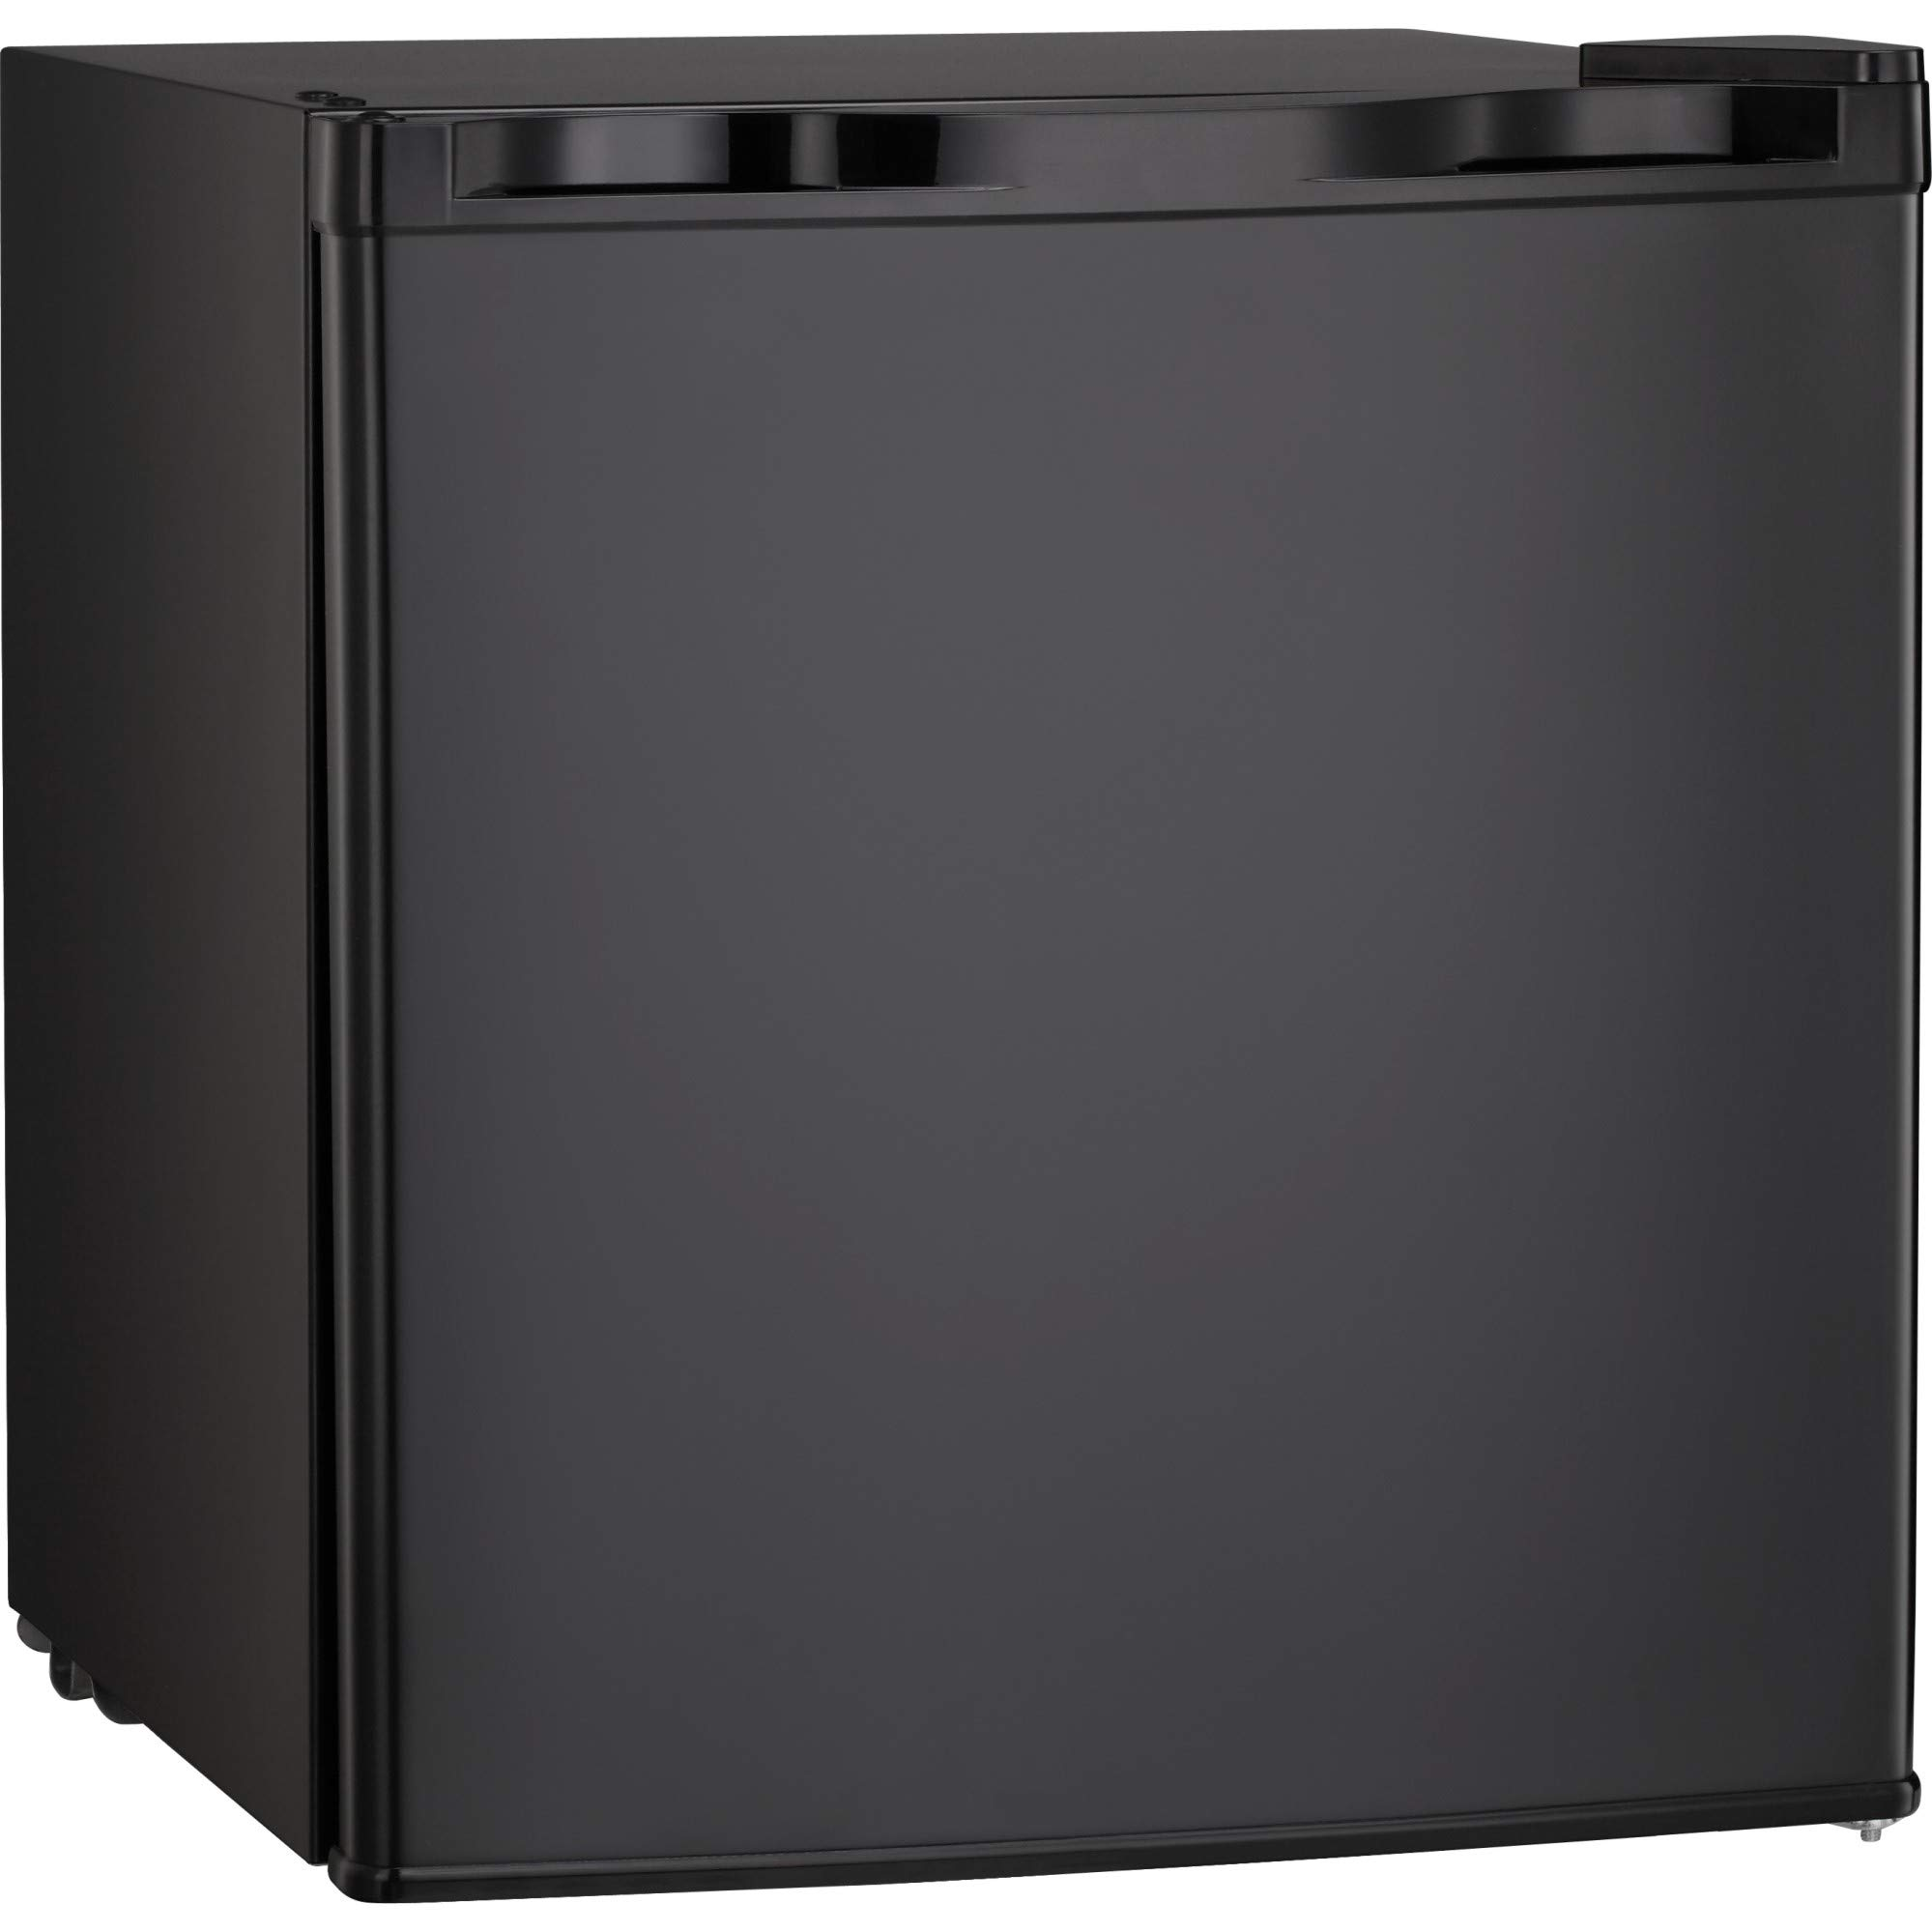 Antarctic Star Compact Mini Refrigerator Small Fridge Reversible Single Door Removable Stainless Steel, Dorm/Office Freezer1.62 cu ft Black by Antarctic Star